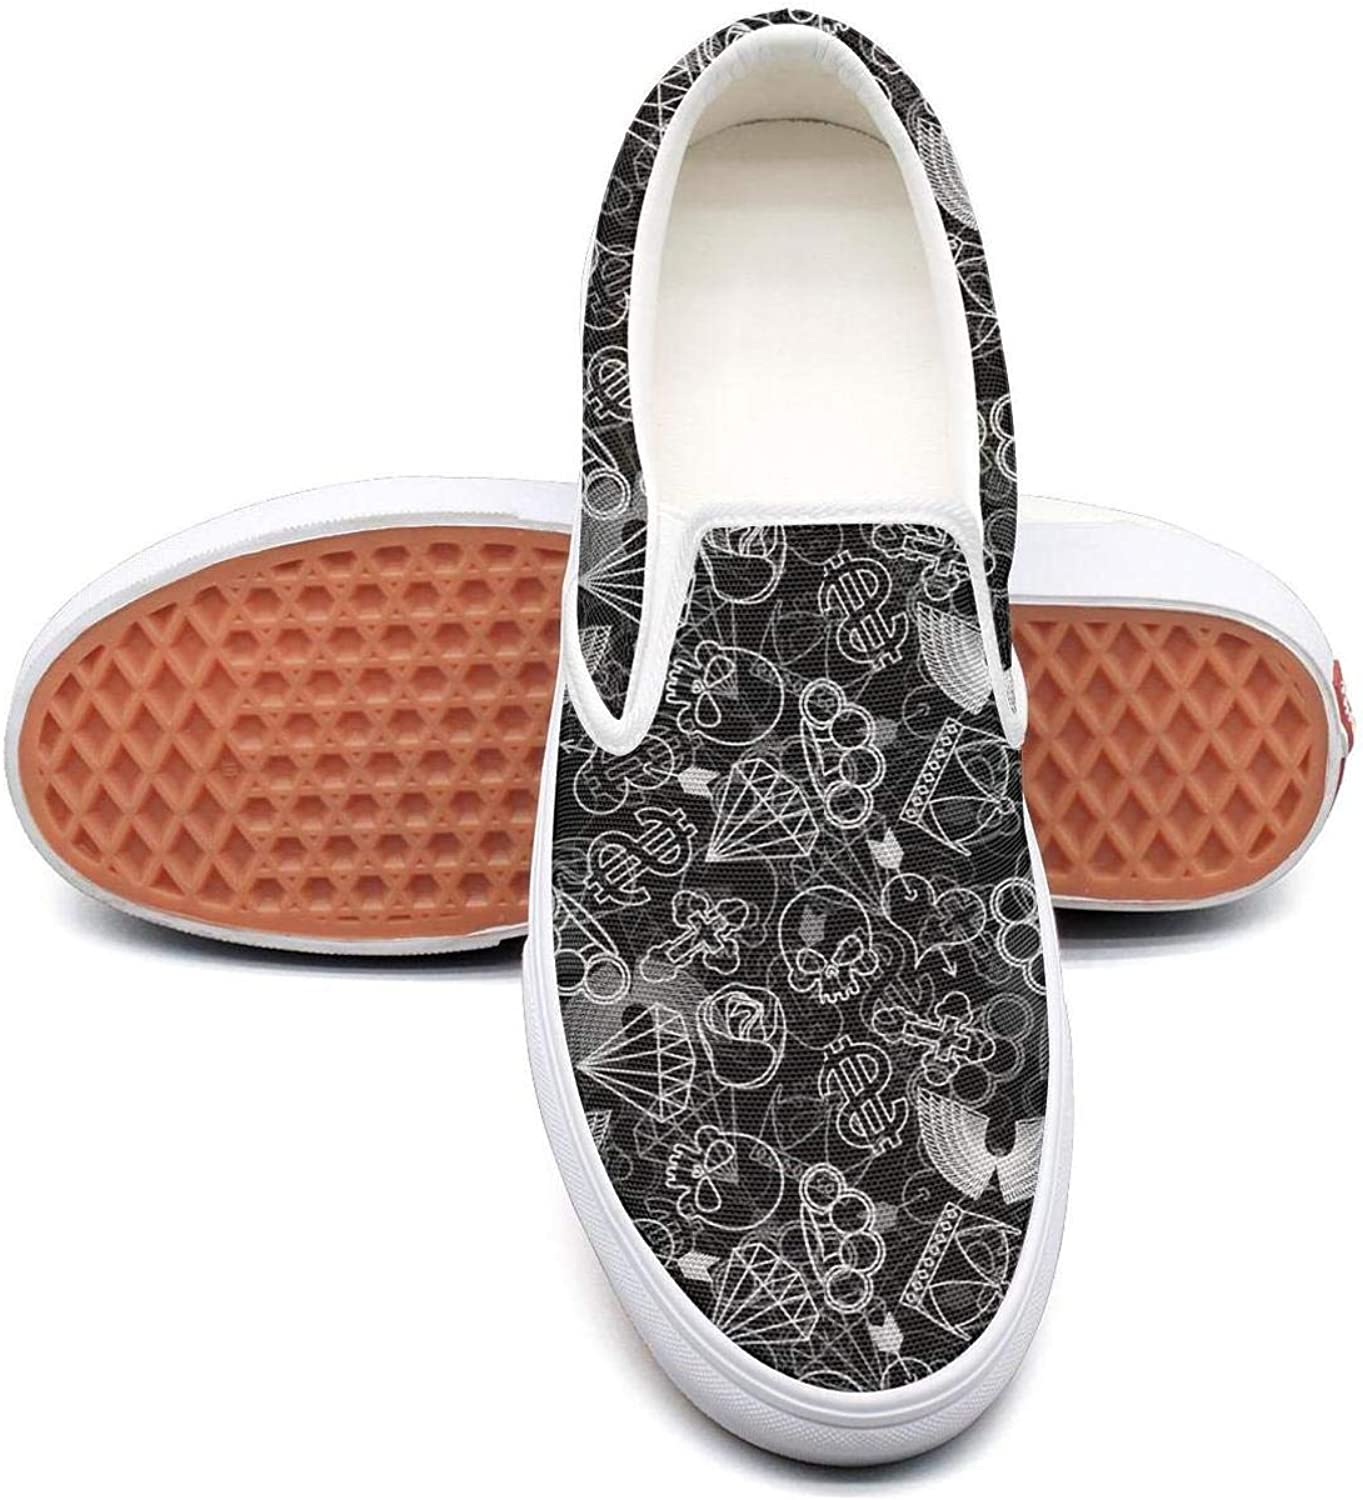 Skull and Brass Knuckles Slip On Rubber Sole Loafers Canvas shoes for Women Fashion